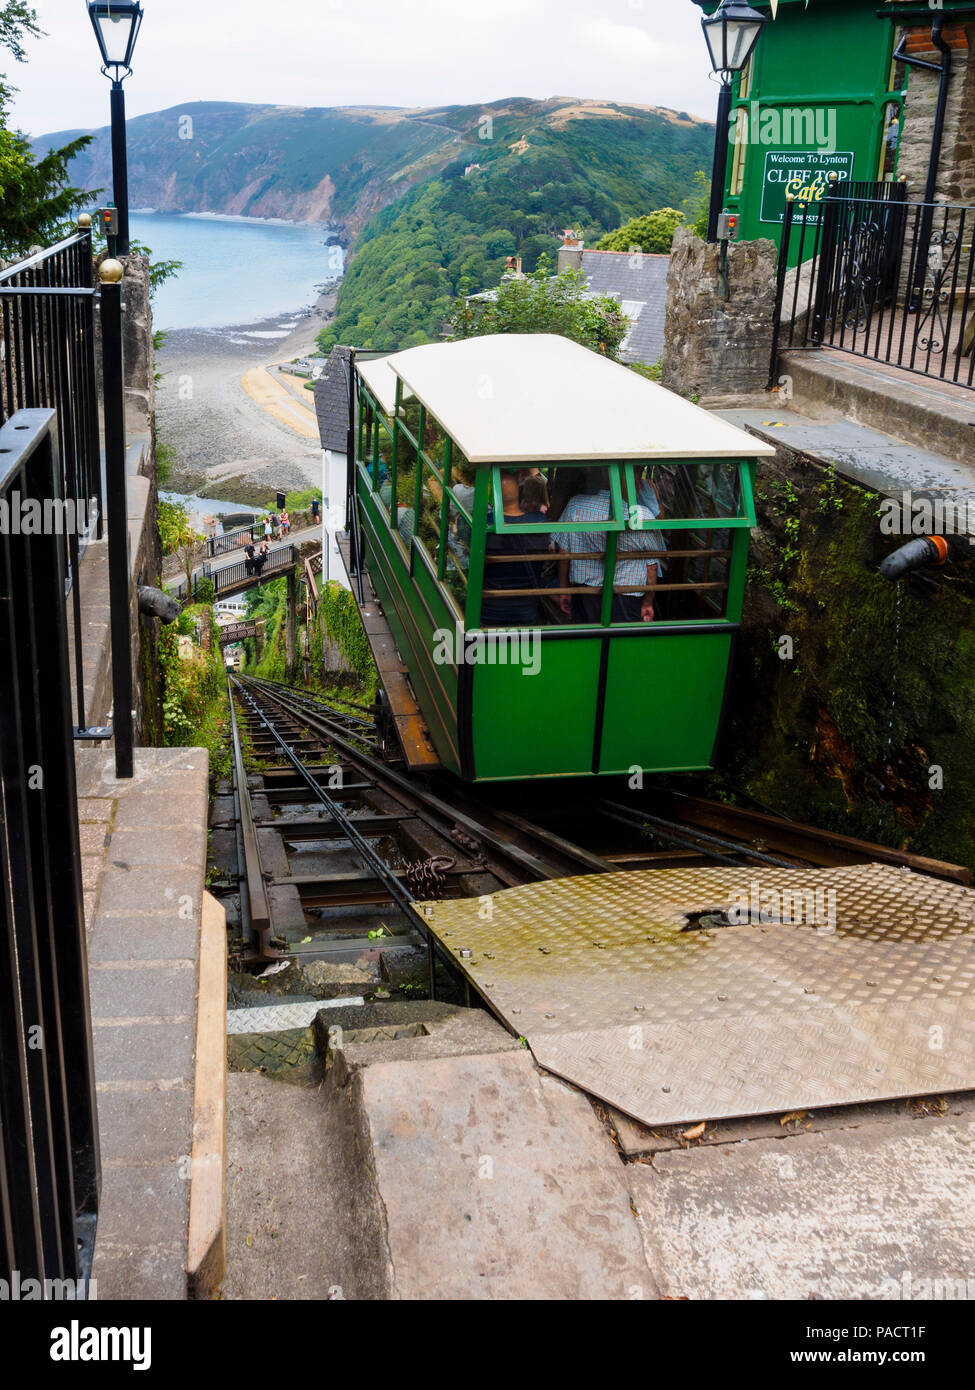 carriage-descending-on-the-1888-lynton-to-lynmouth-cliff-railway-lynmouth-bay-devon-uk-in-the-background-PACT1F.jpg